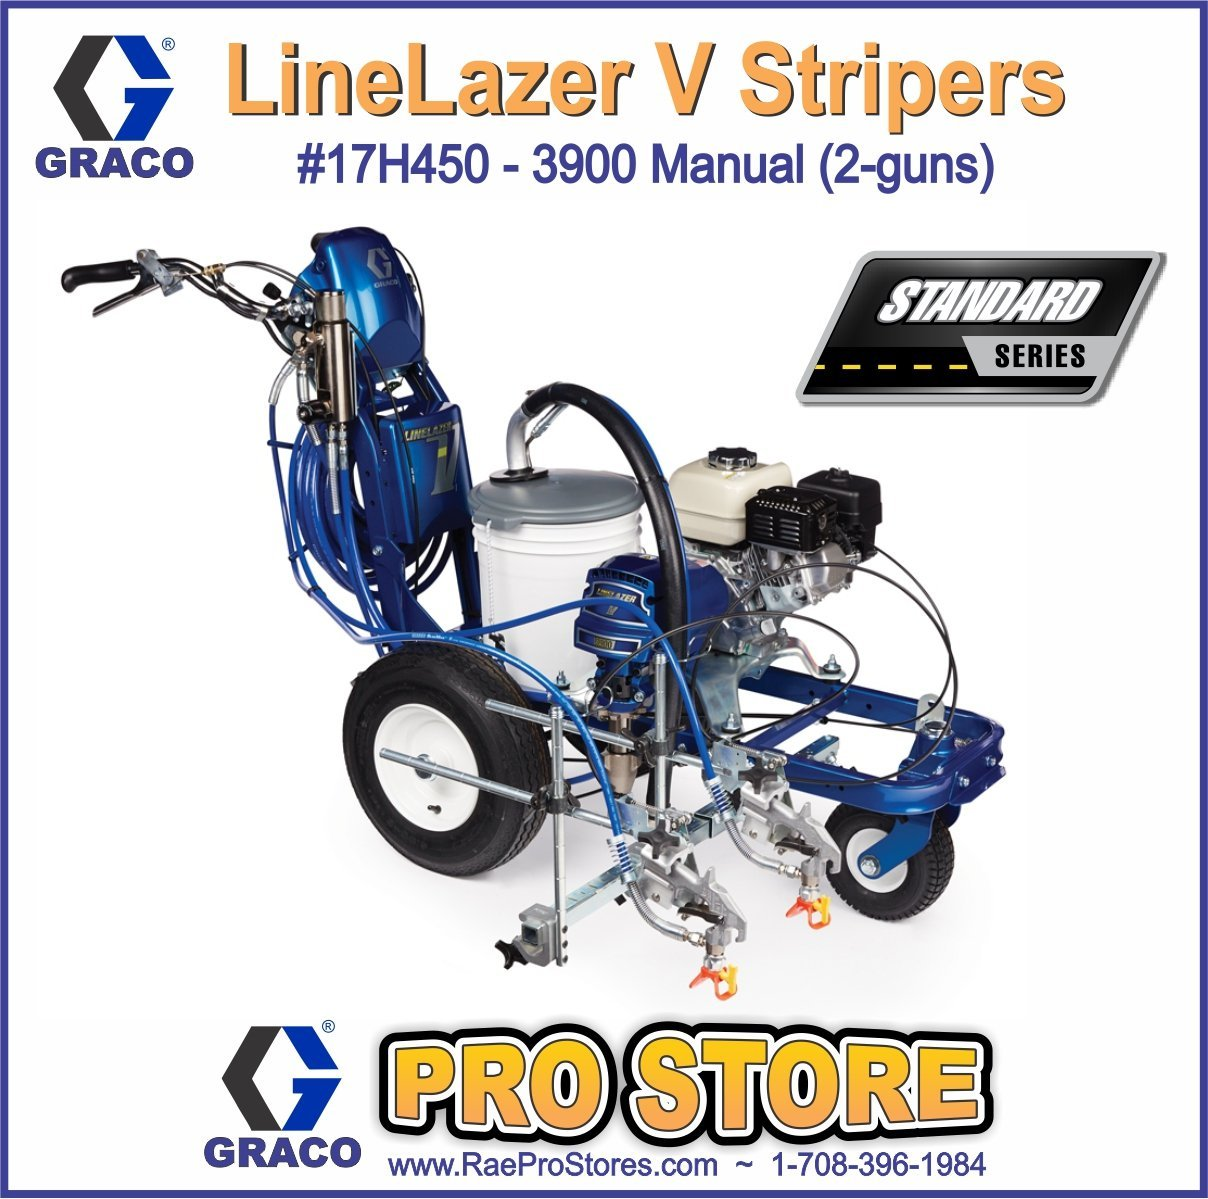 Graco LineLazer V 3900 Standard - 2-Manual Guns - Airless Paint Line  Striper - 17H450: Amazon.com: Industrial & Scientific